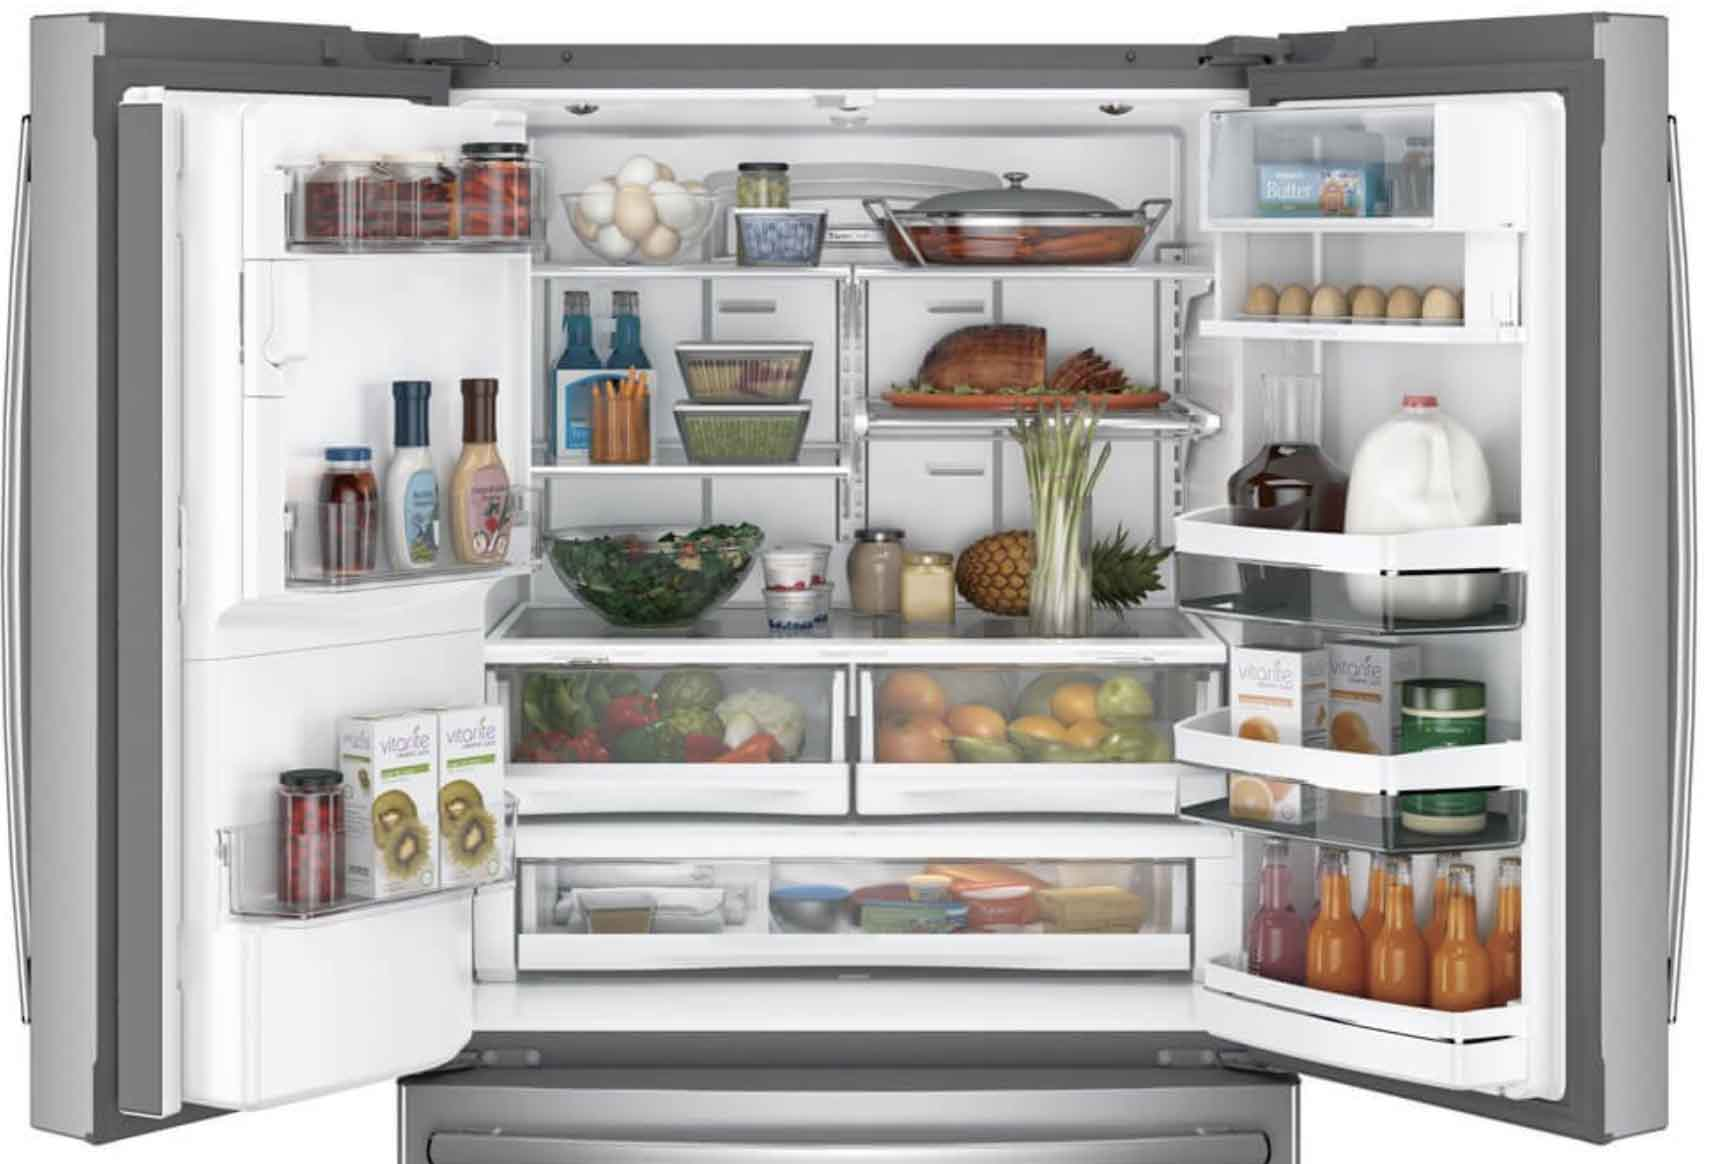 Kitchenaid Krff302ess Ranked List Of The Best Refrigerator S Home Supply Listshome